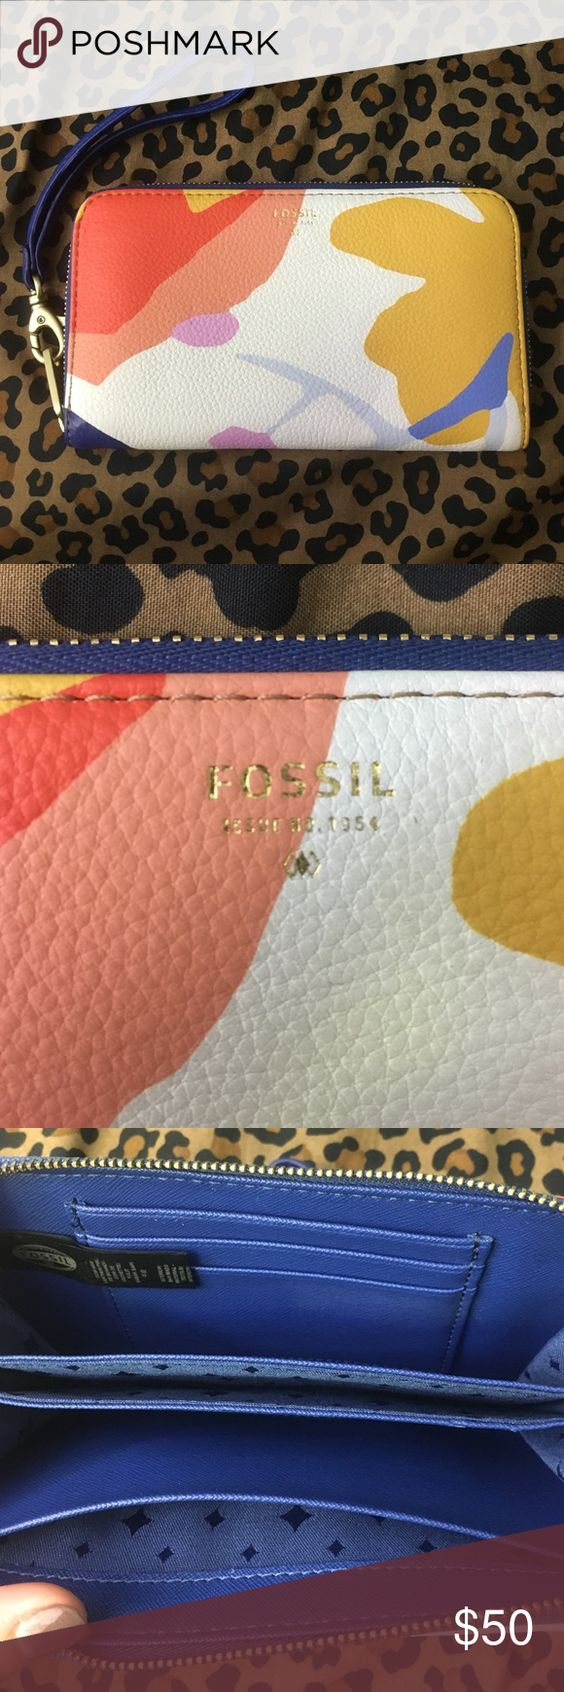 Fossil wallet! Fossil wallet with wristlet attachment. Never used, just been sitting in my closet. 3 card holders on the inside. Coin pouch on the outside. Willing to take offers! Fossil Bags Wallets